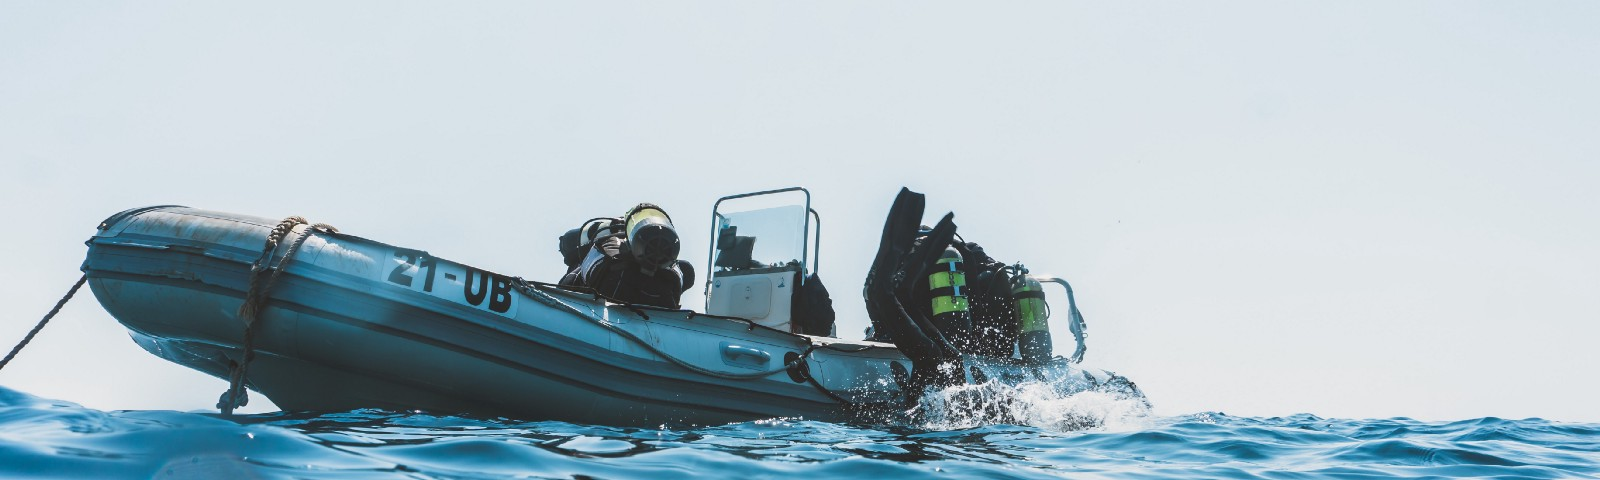 5-Year Trends in The Dive Industry: Scuba Gear, Dive Travel & Certifications